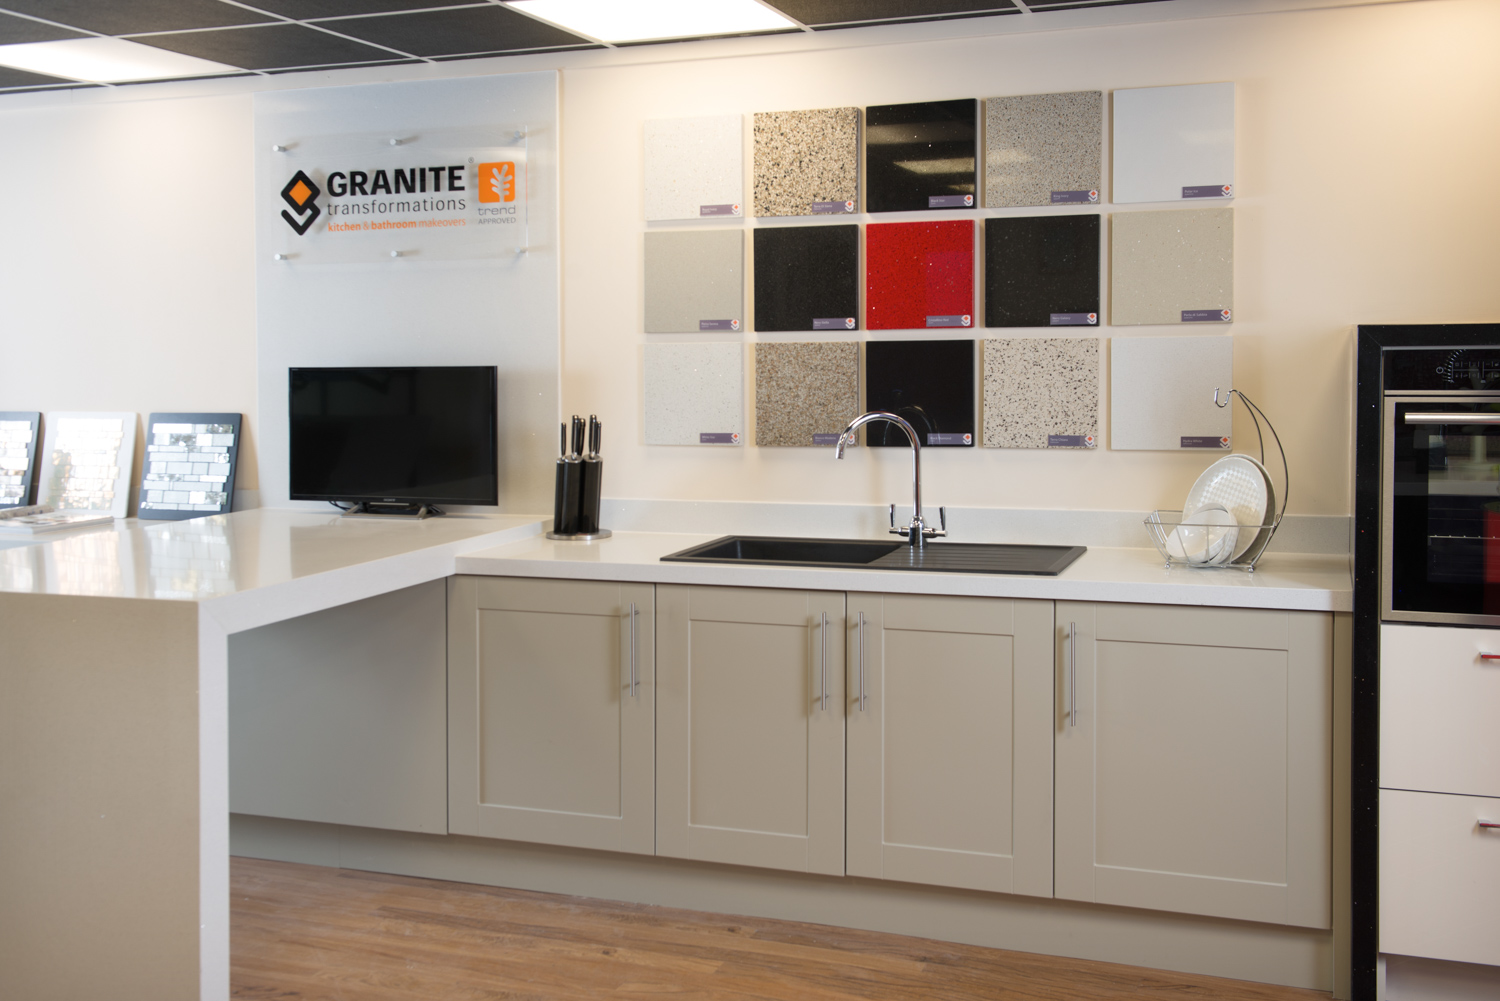 Granite Transformations Tees Valley - Stockton-on-Tees, North Yorkshire TS18 3SQ - 01429 818152 | ShowMeLocal.com